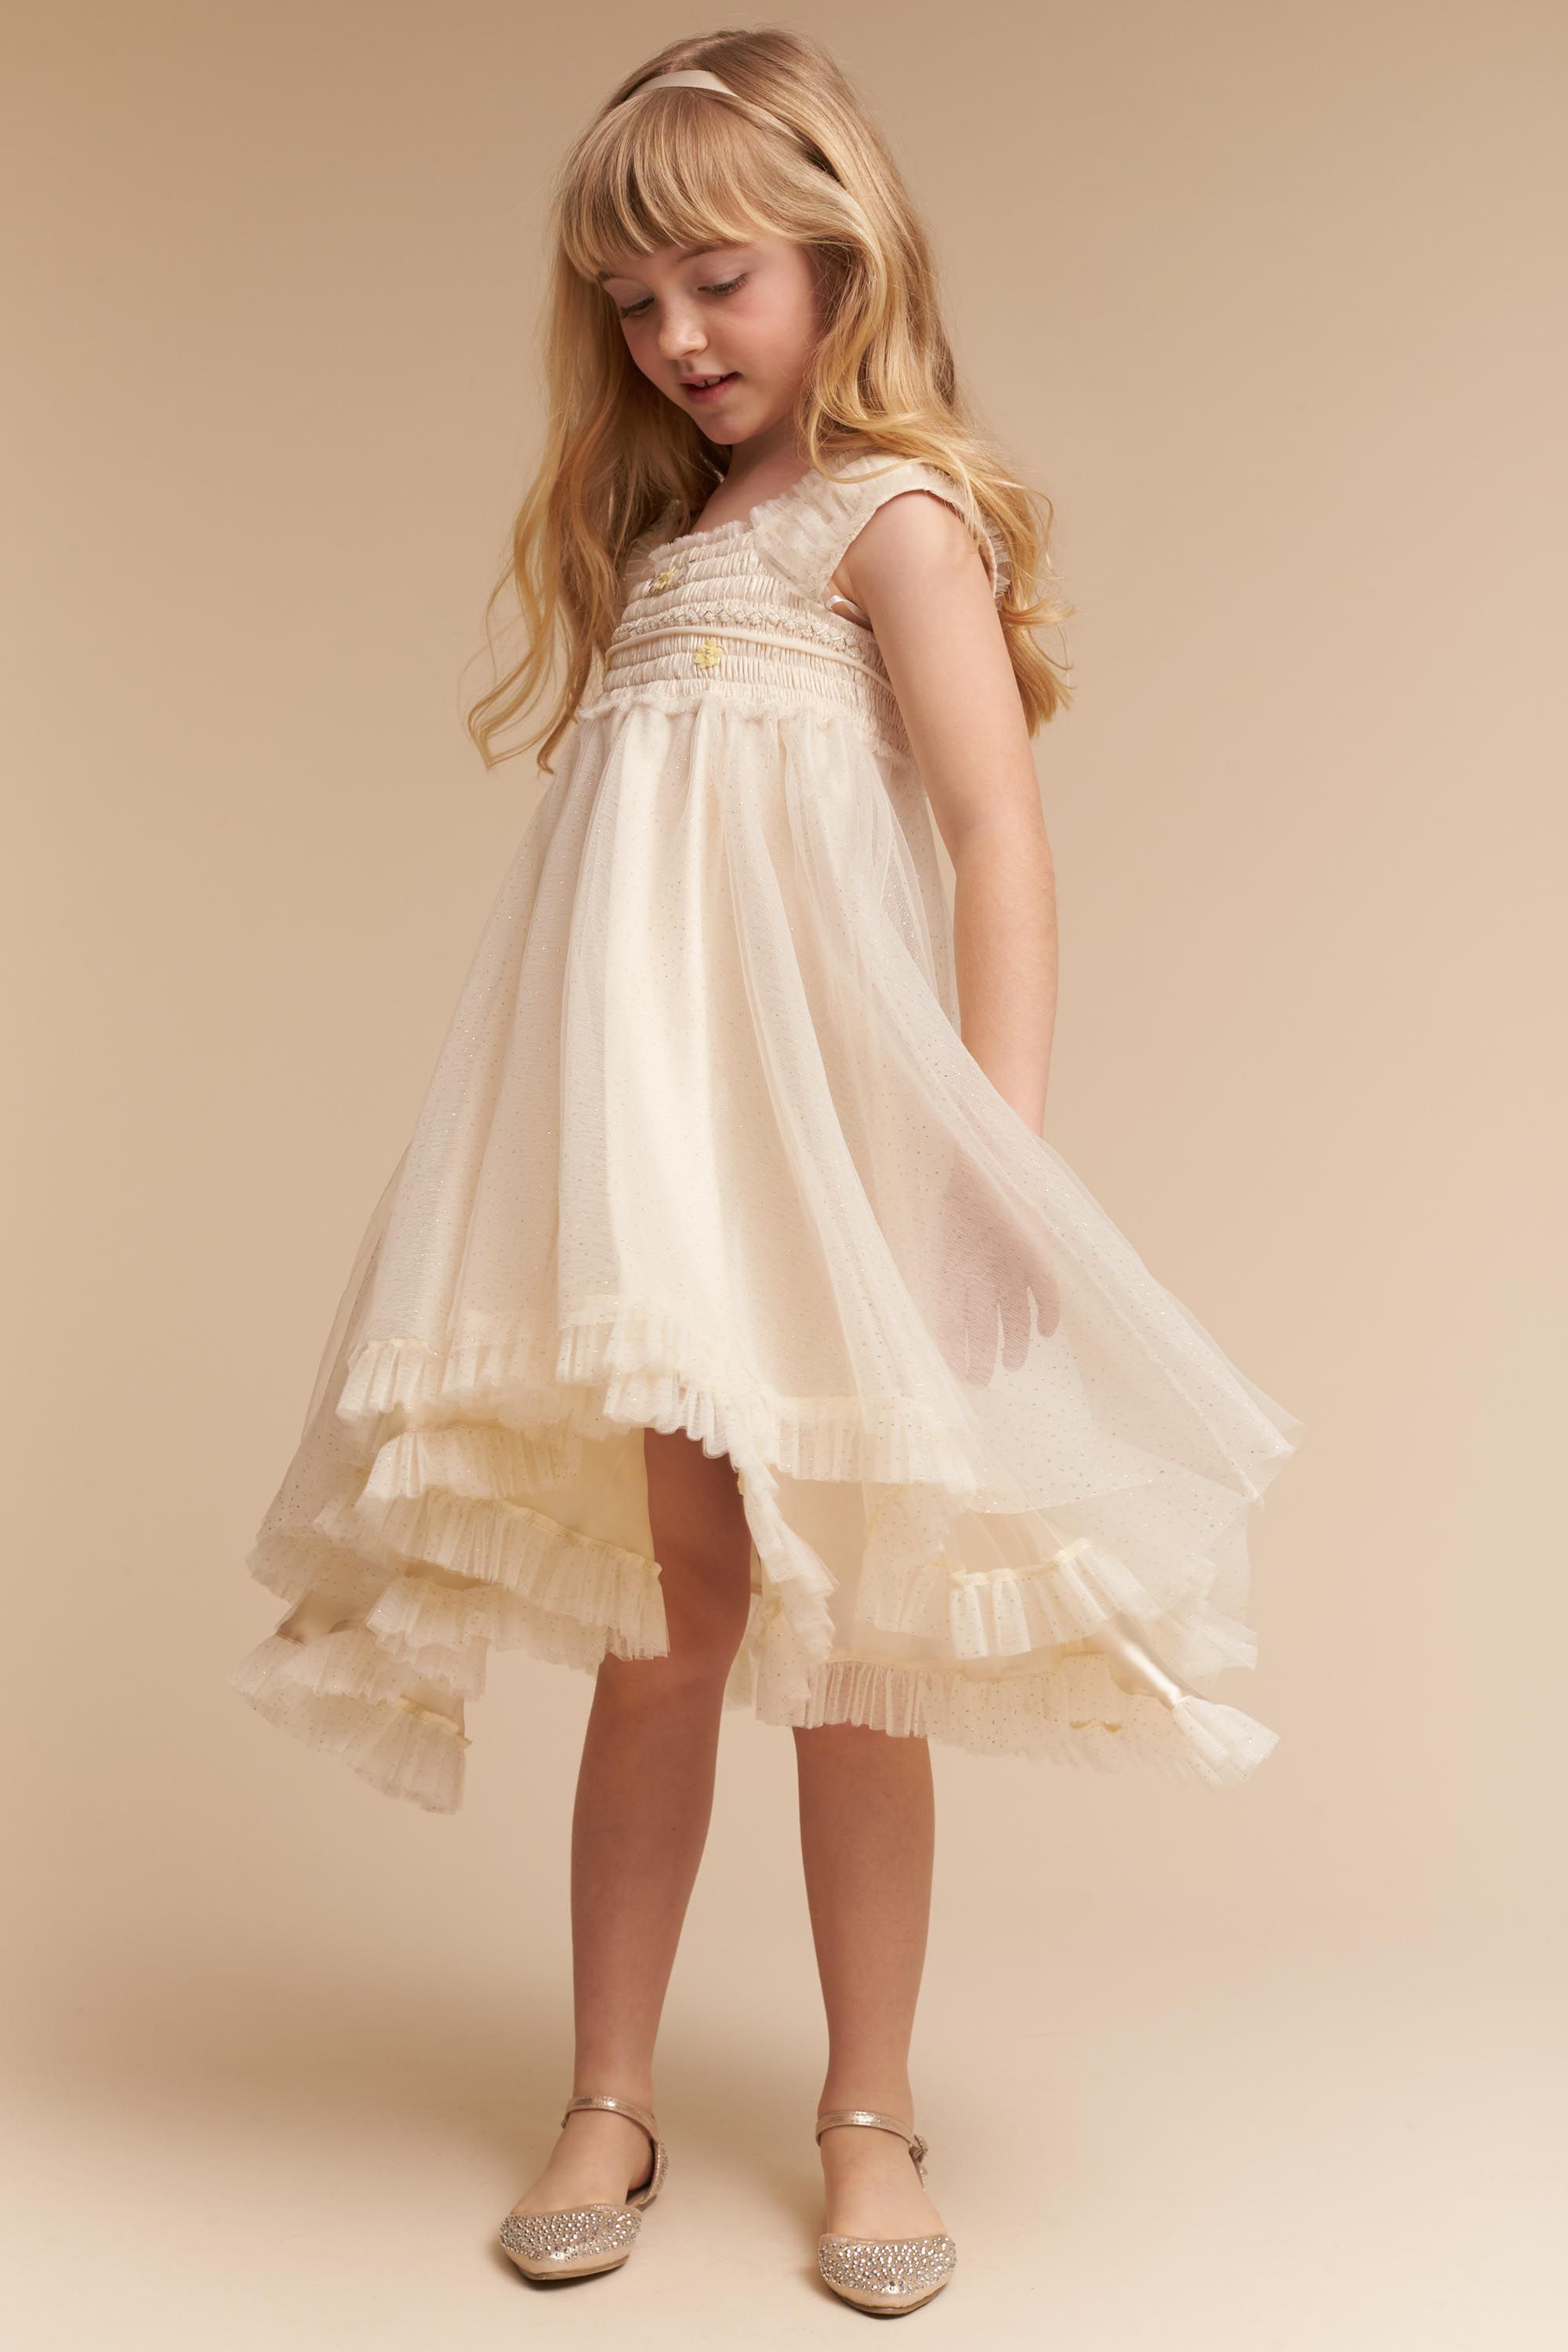 a scottish style flower girl dress with tulle skirt in ... |Flower Girl Dress Brooches